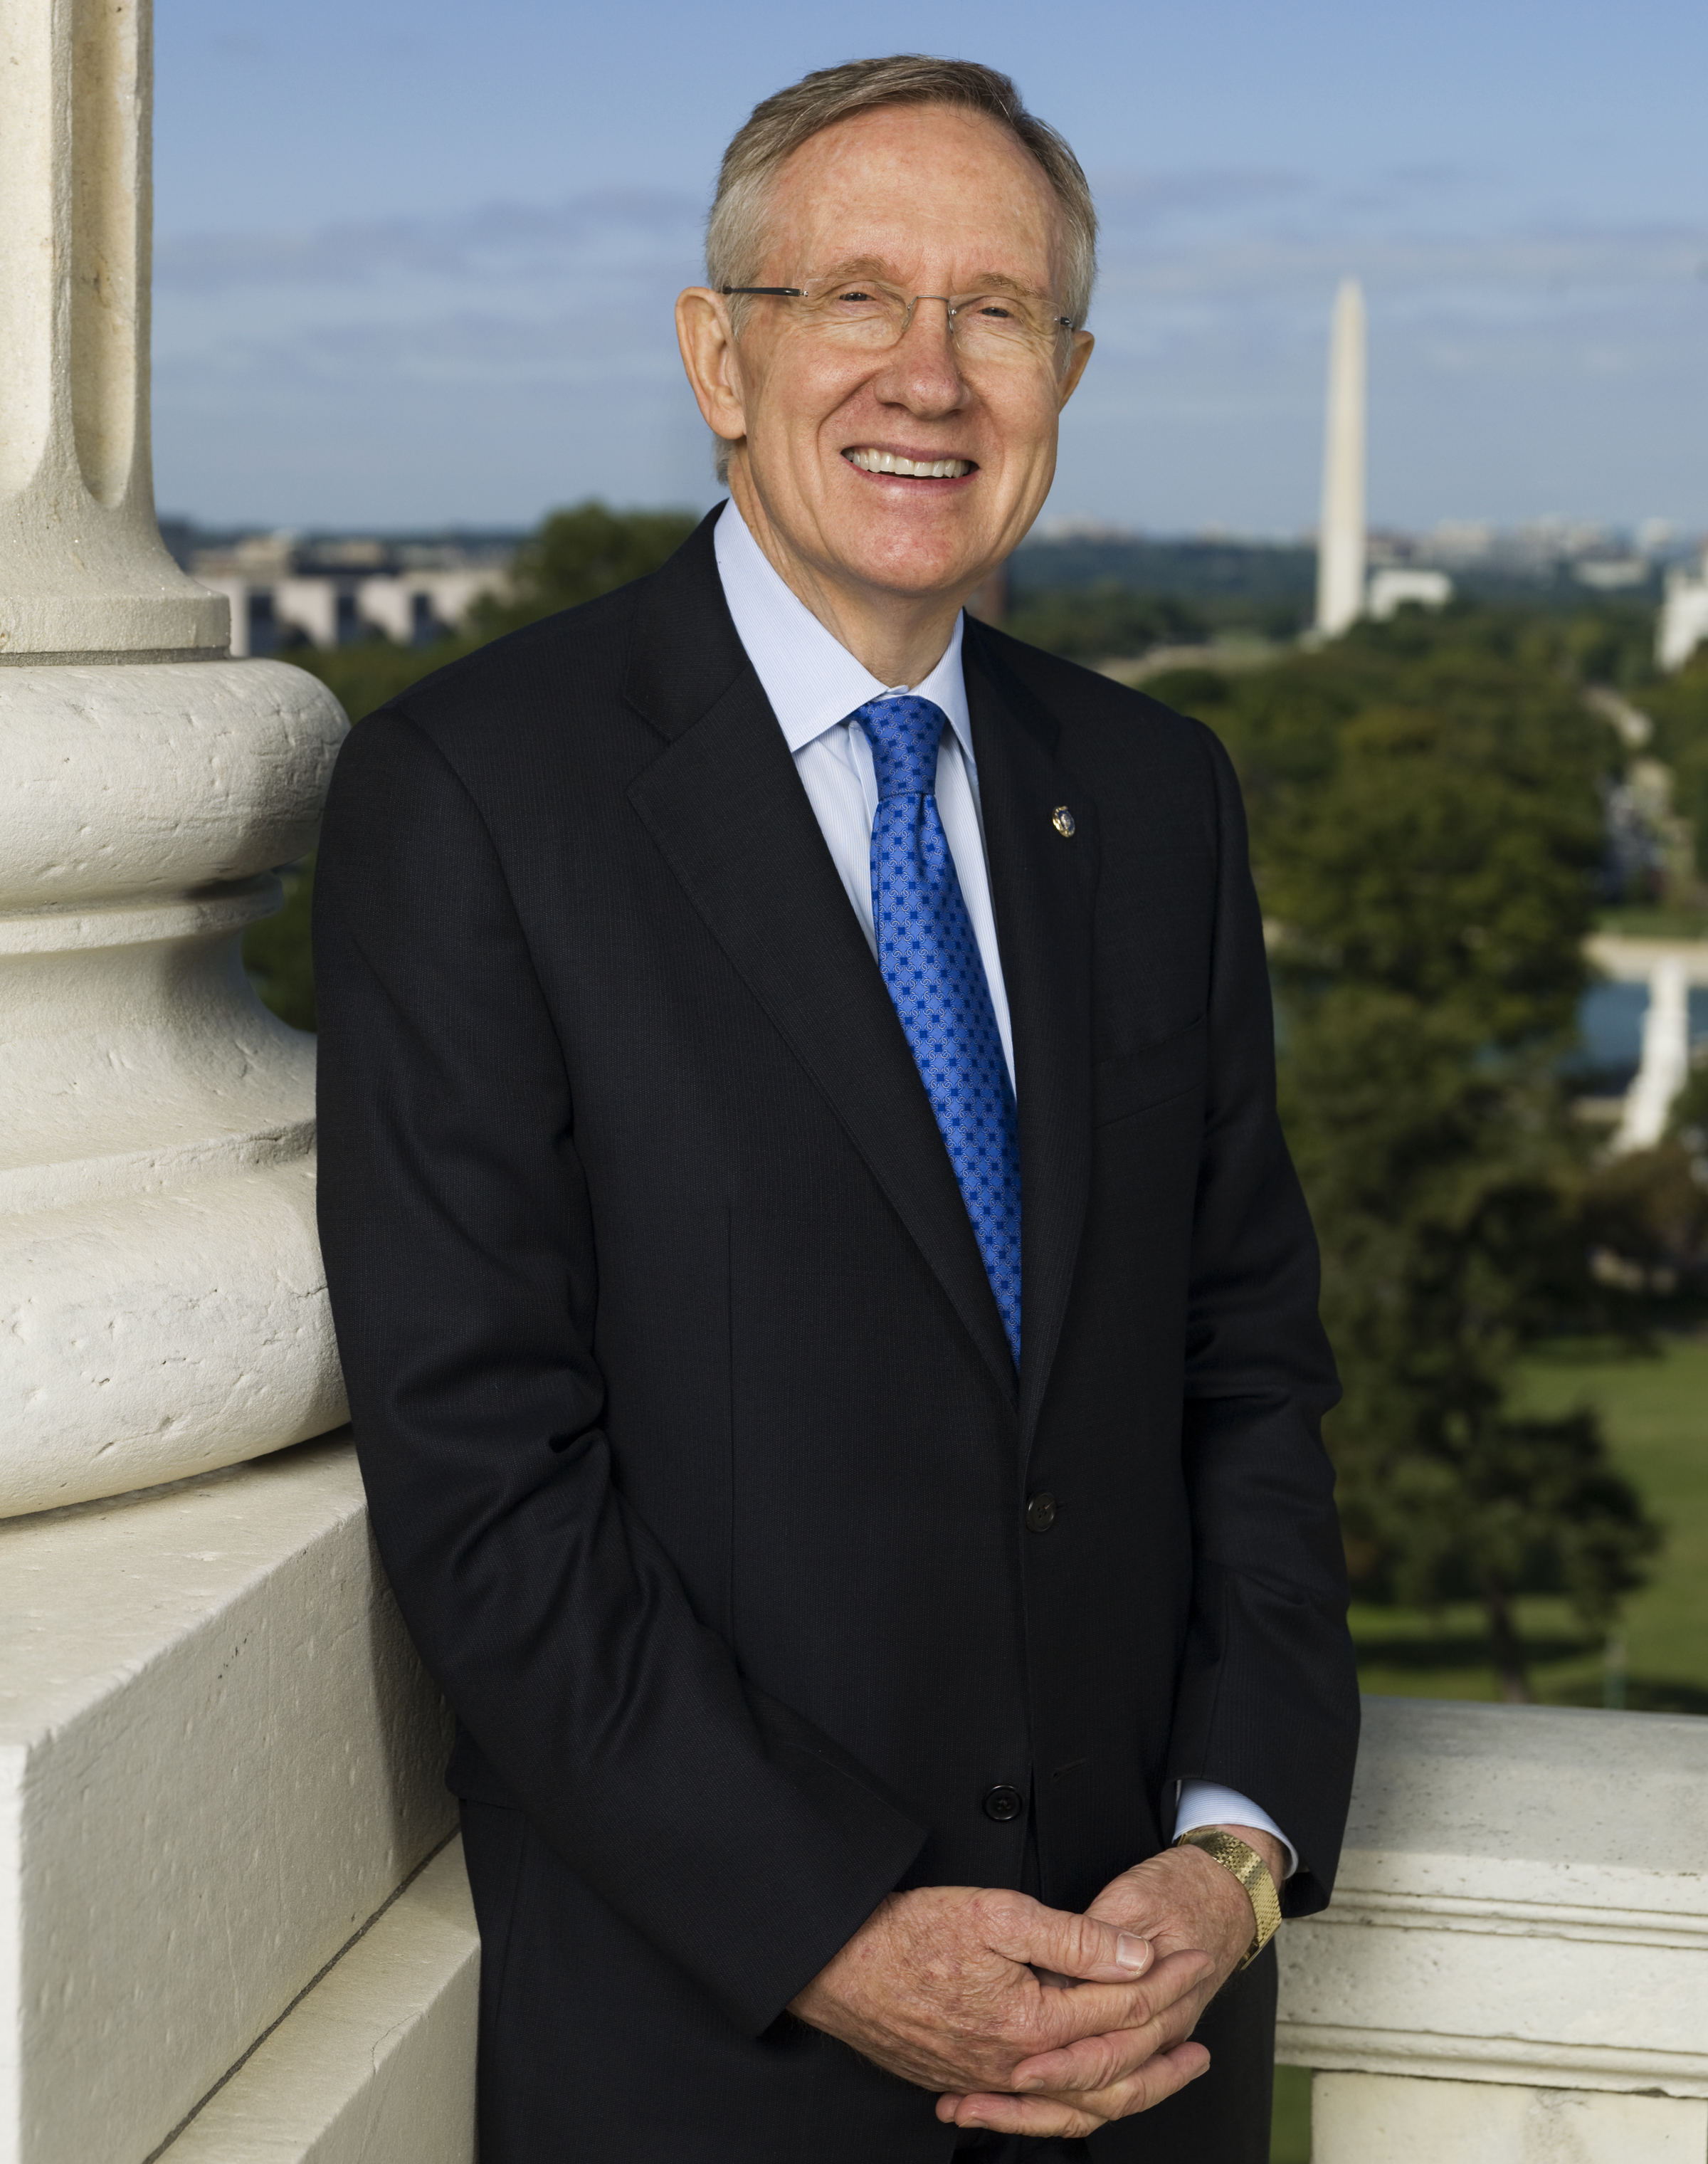 The 78-year old son of father Harry Vincent Reid and mother Inez Orena Reid, 178 cm tall Harry Reid in 2018 photo